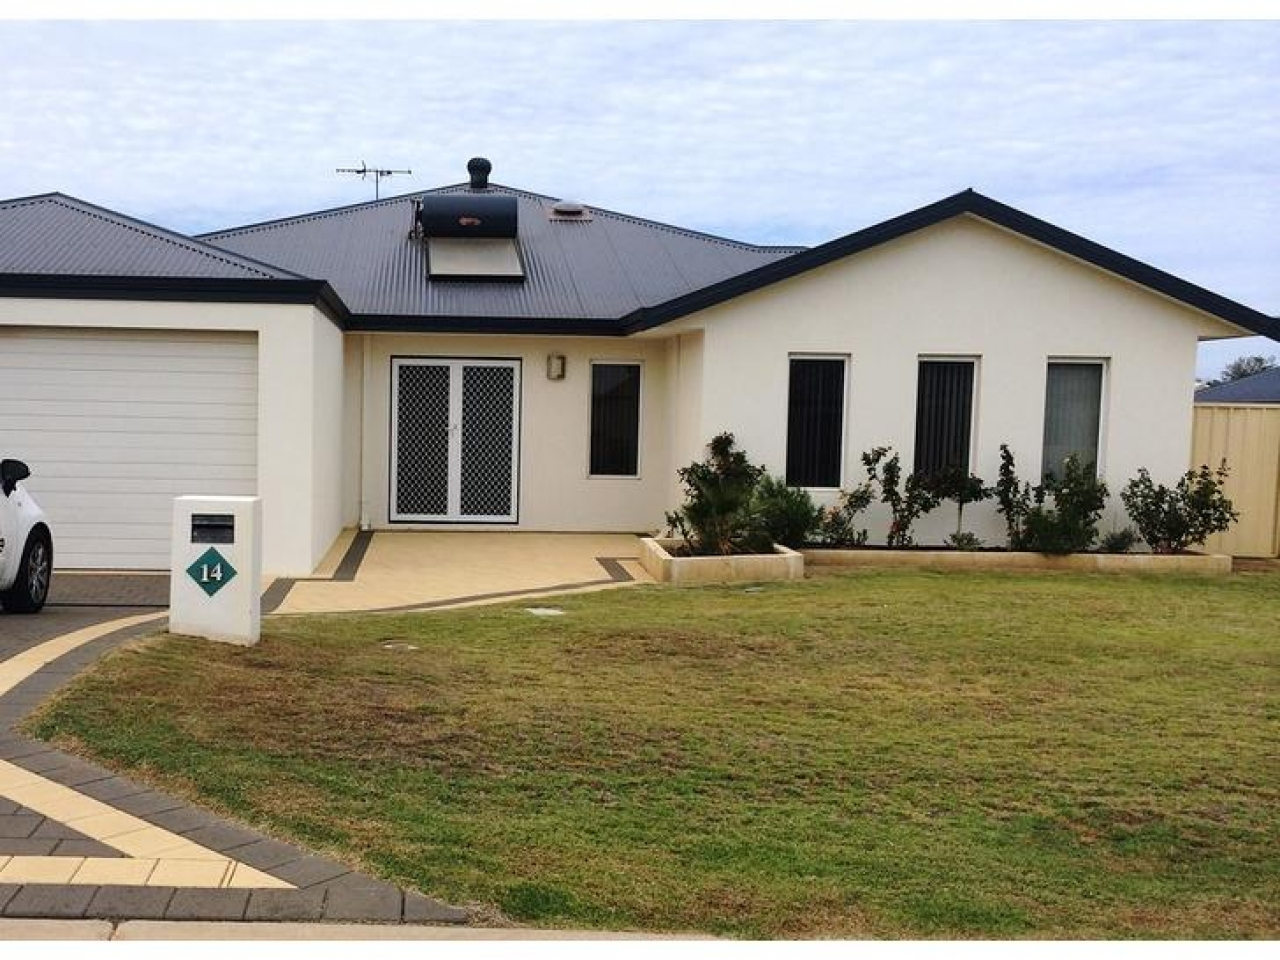 House For Rent 14 Portside Road Drummond Cove 6532 Wa Stunning 3 Bedroom Houses For Rent